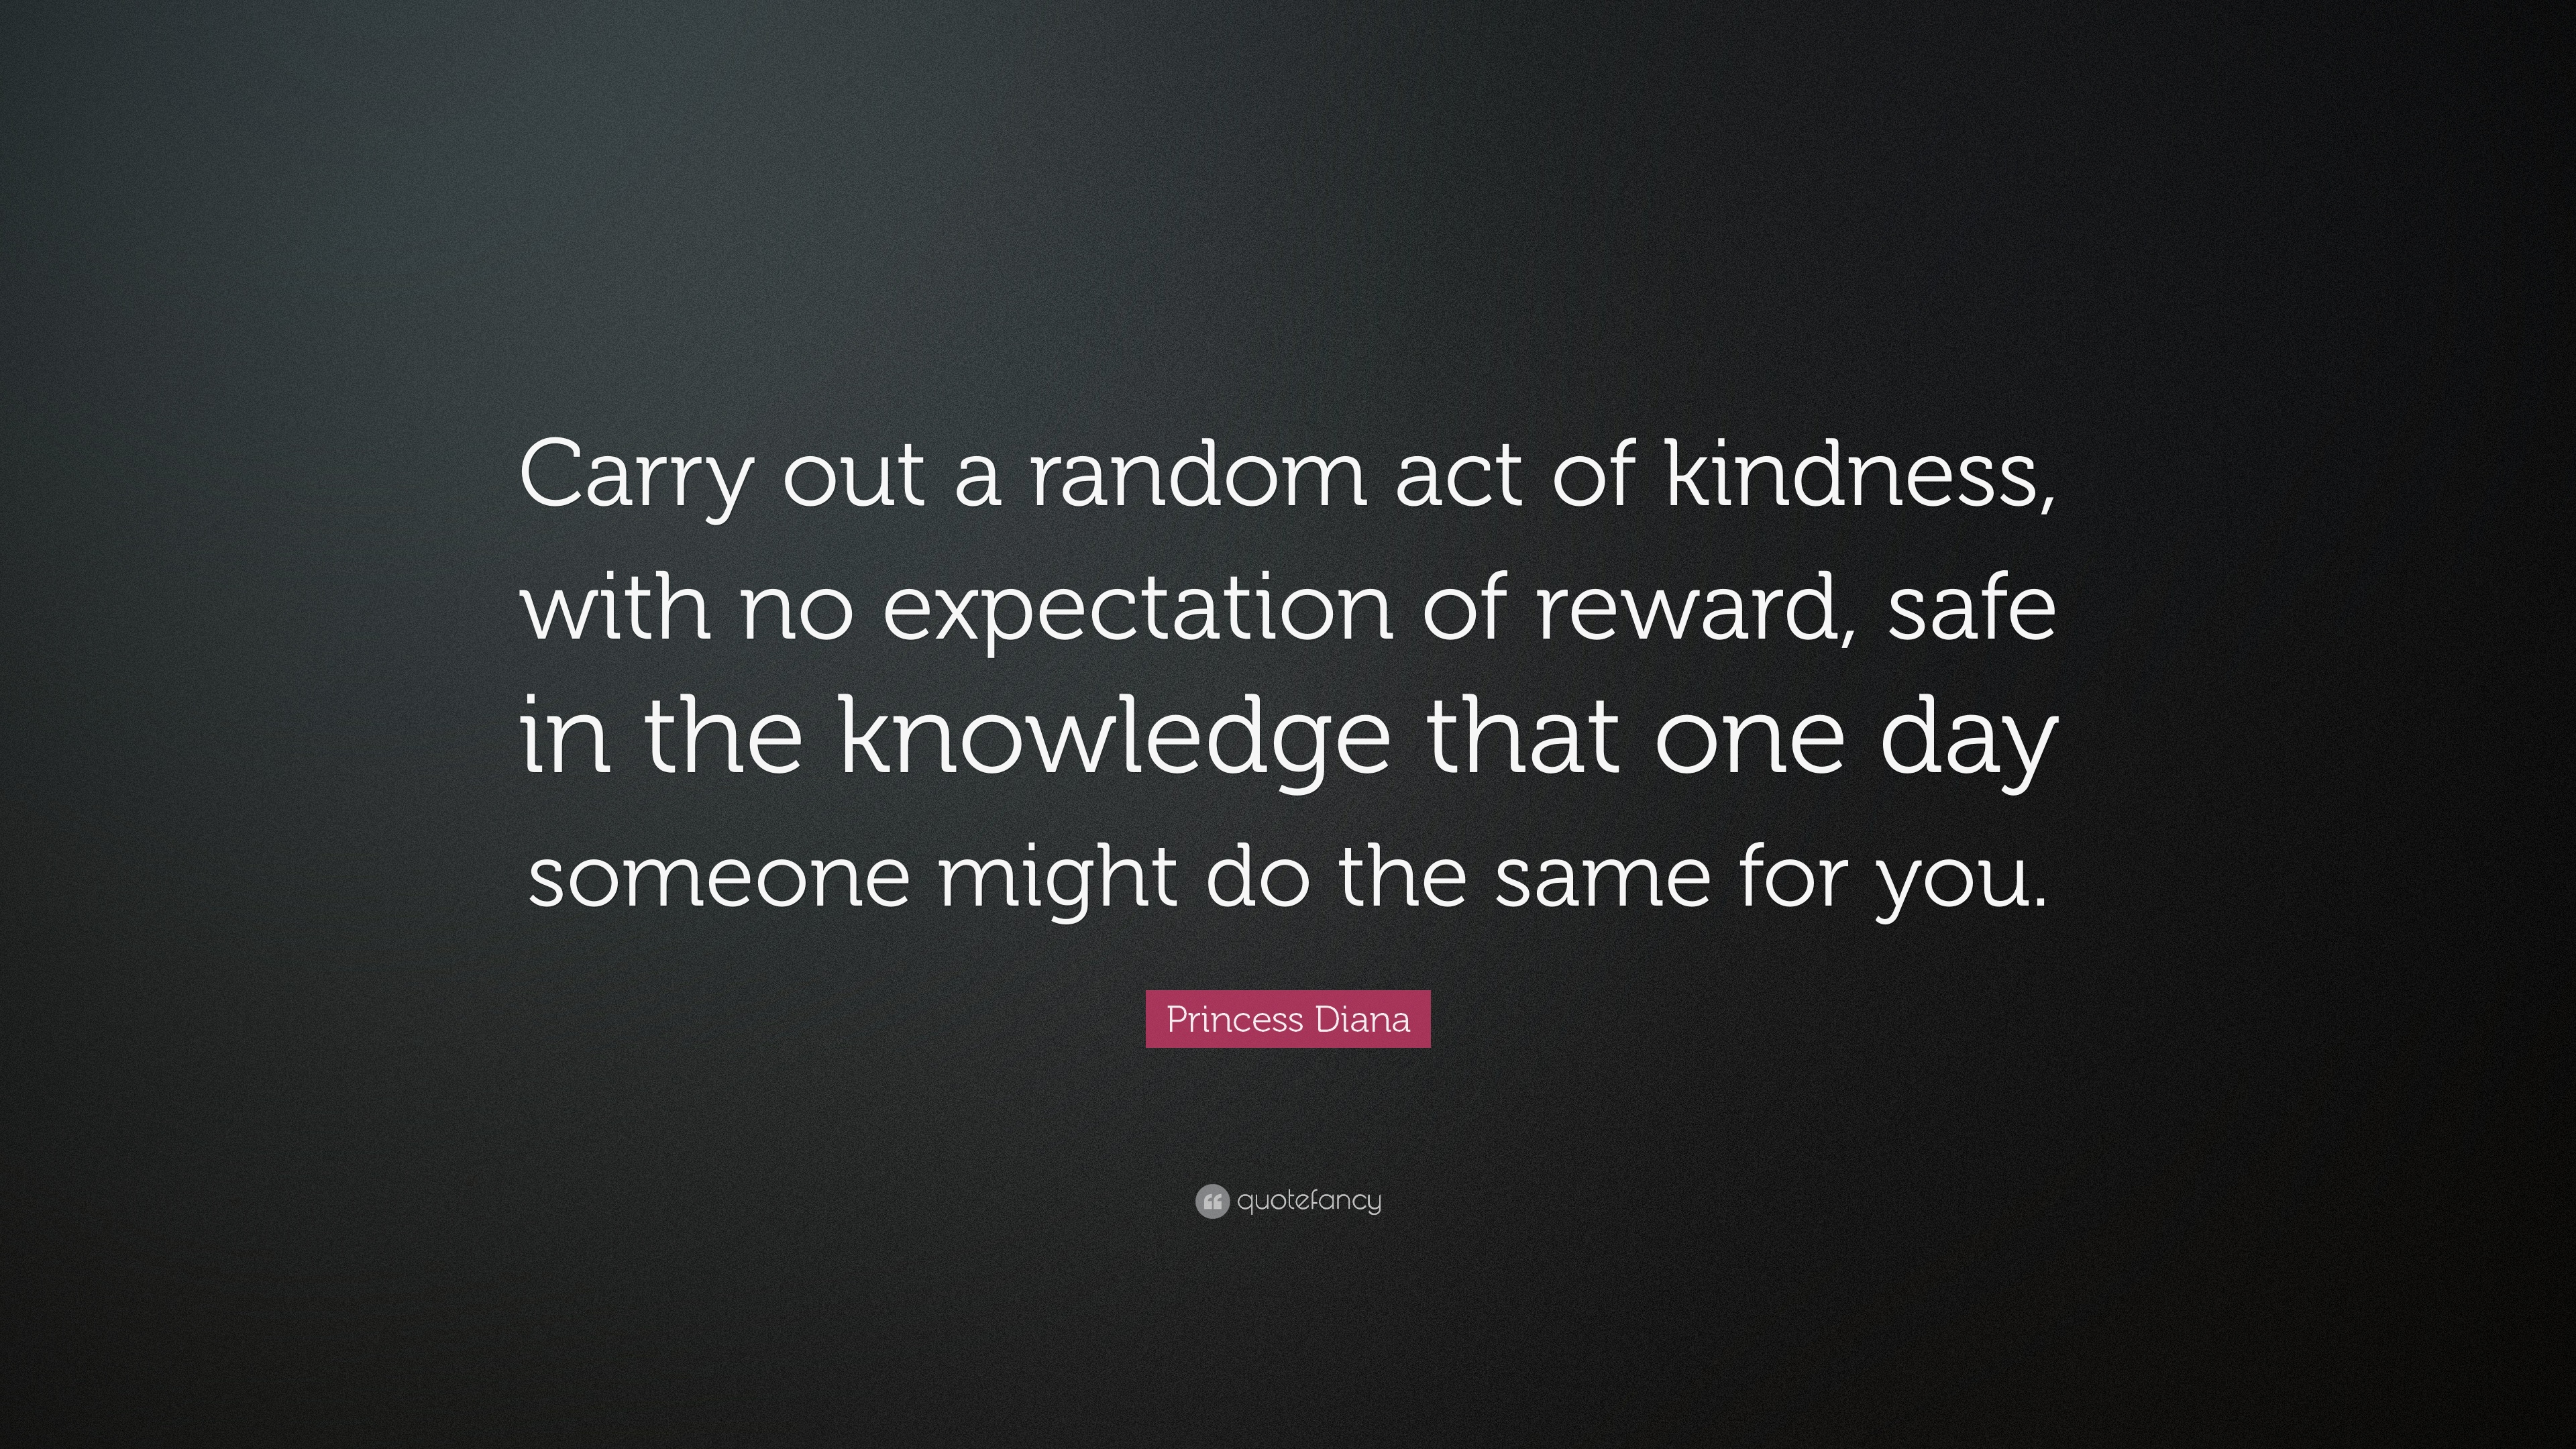 a random act of kindness Random acts of kindness can be big or small things you do just for the benefit of someone else it also feels good to help or support people, although that is a happy consequence and not the intended aim of the act.